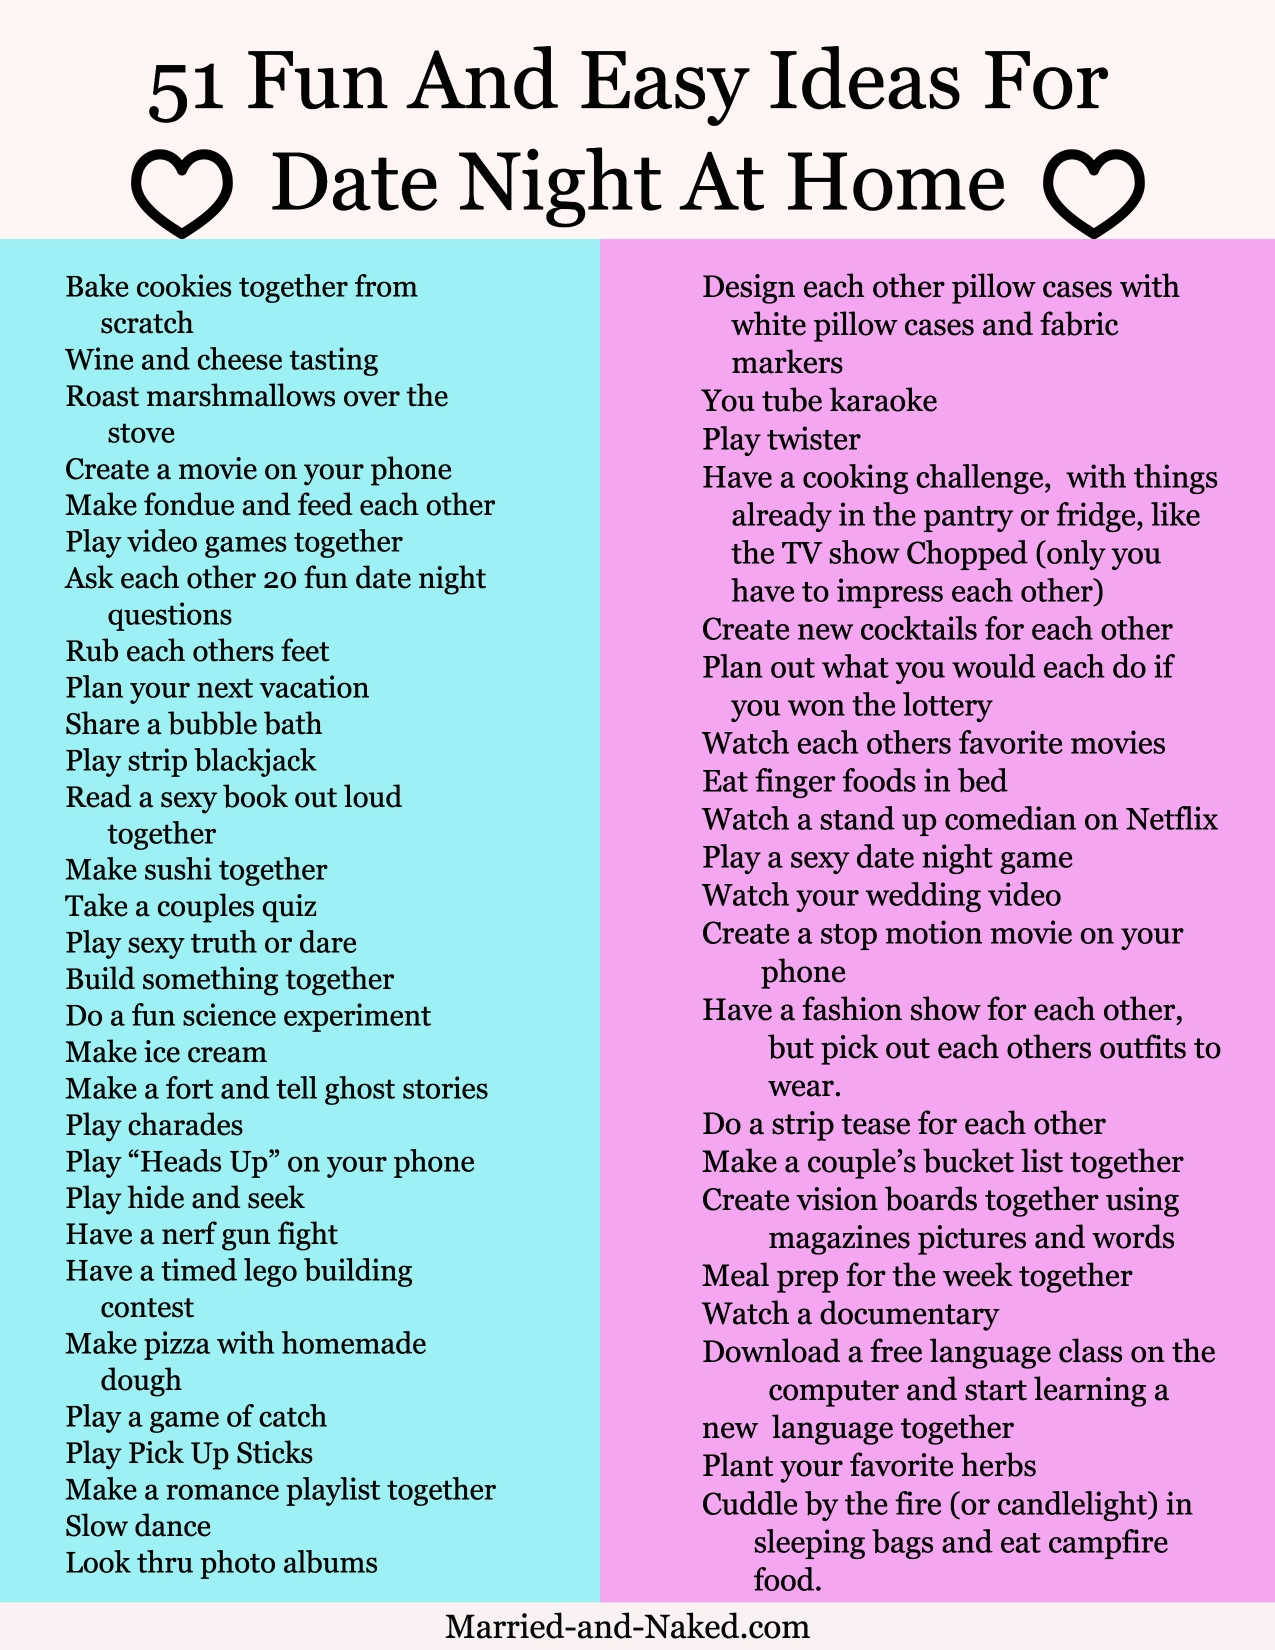 10 Spectacular Dating Ideas For Married Couples date night questions for married couples married and naked idee 1 2020